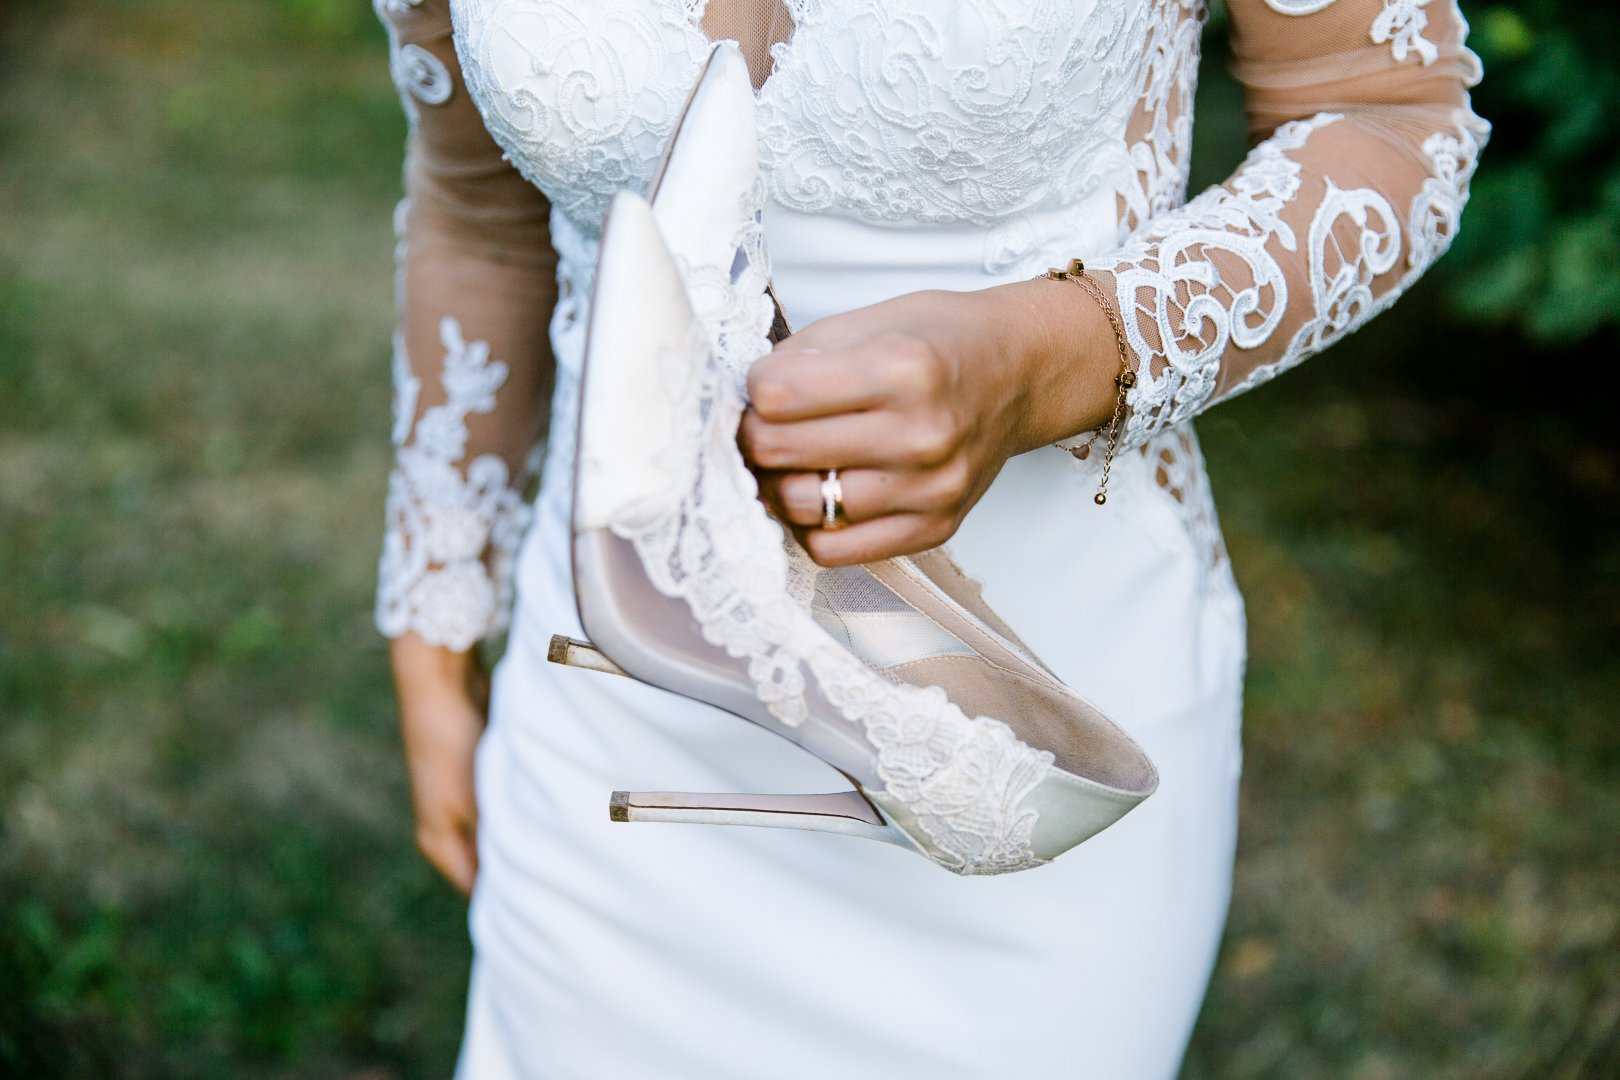 White Photograph Wedding dress Dress Bridal clothing Bride Hand Lace Footwear Wedding ceremony supply Photography Wedding Gown Bridal accessory Fashion accessory Shoe Ceremony